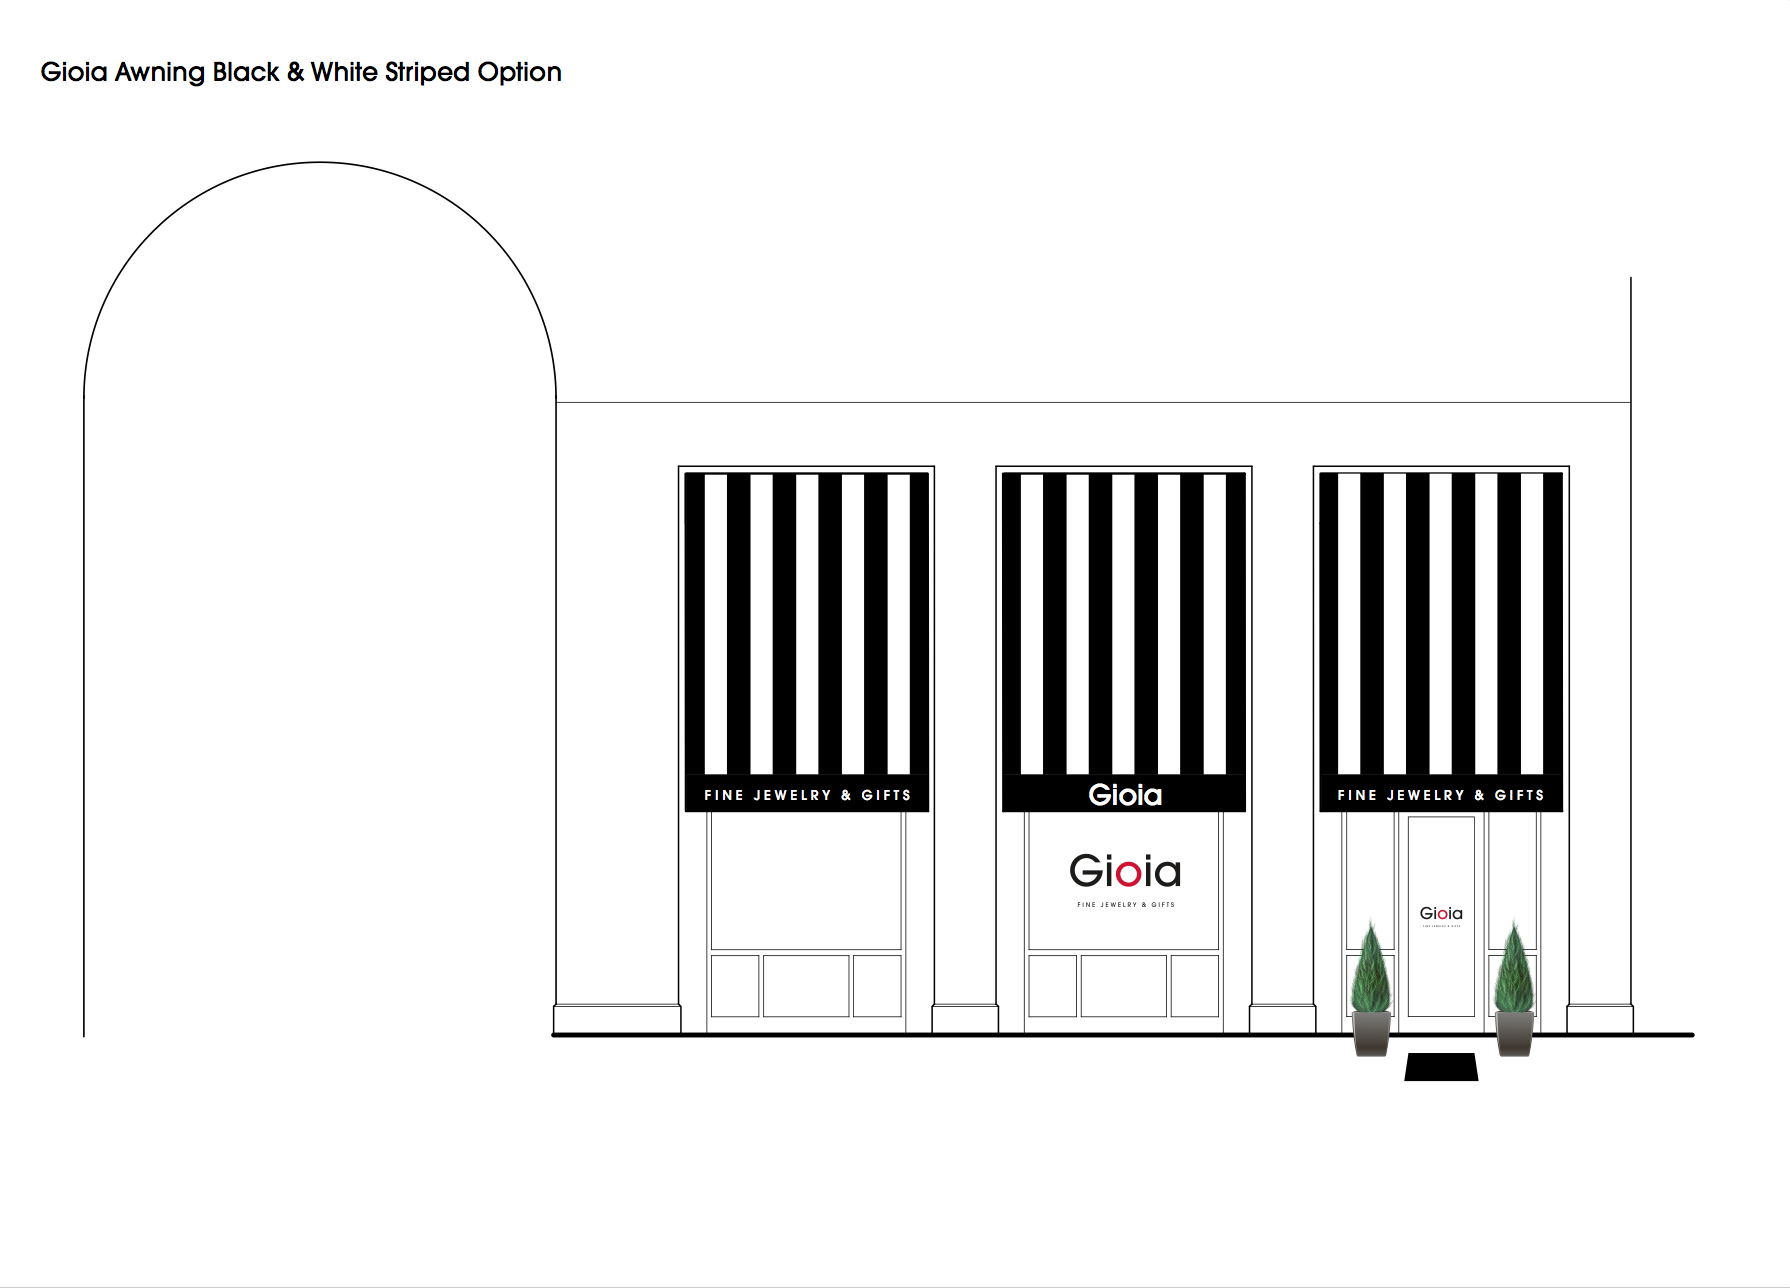 Rendering of Gioia's awnings designed by The Idea Boutique